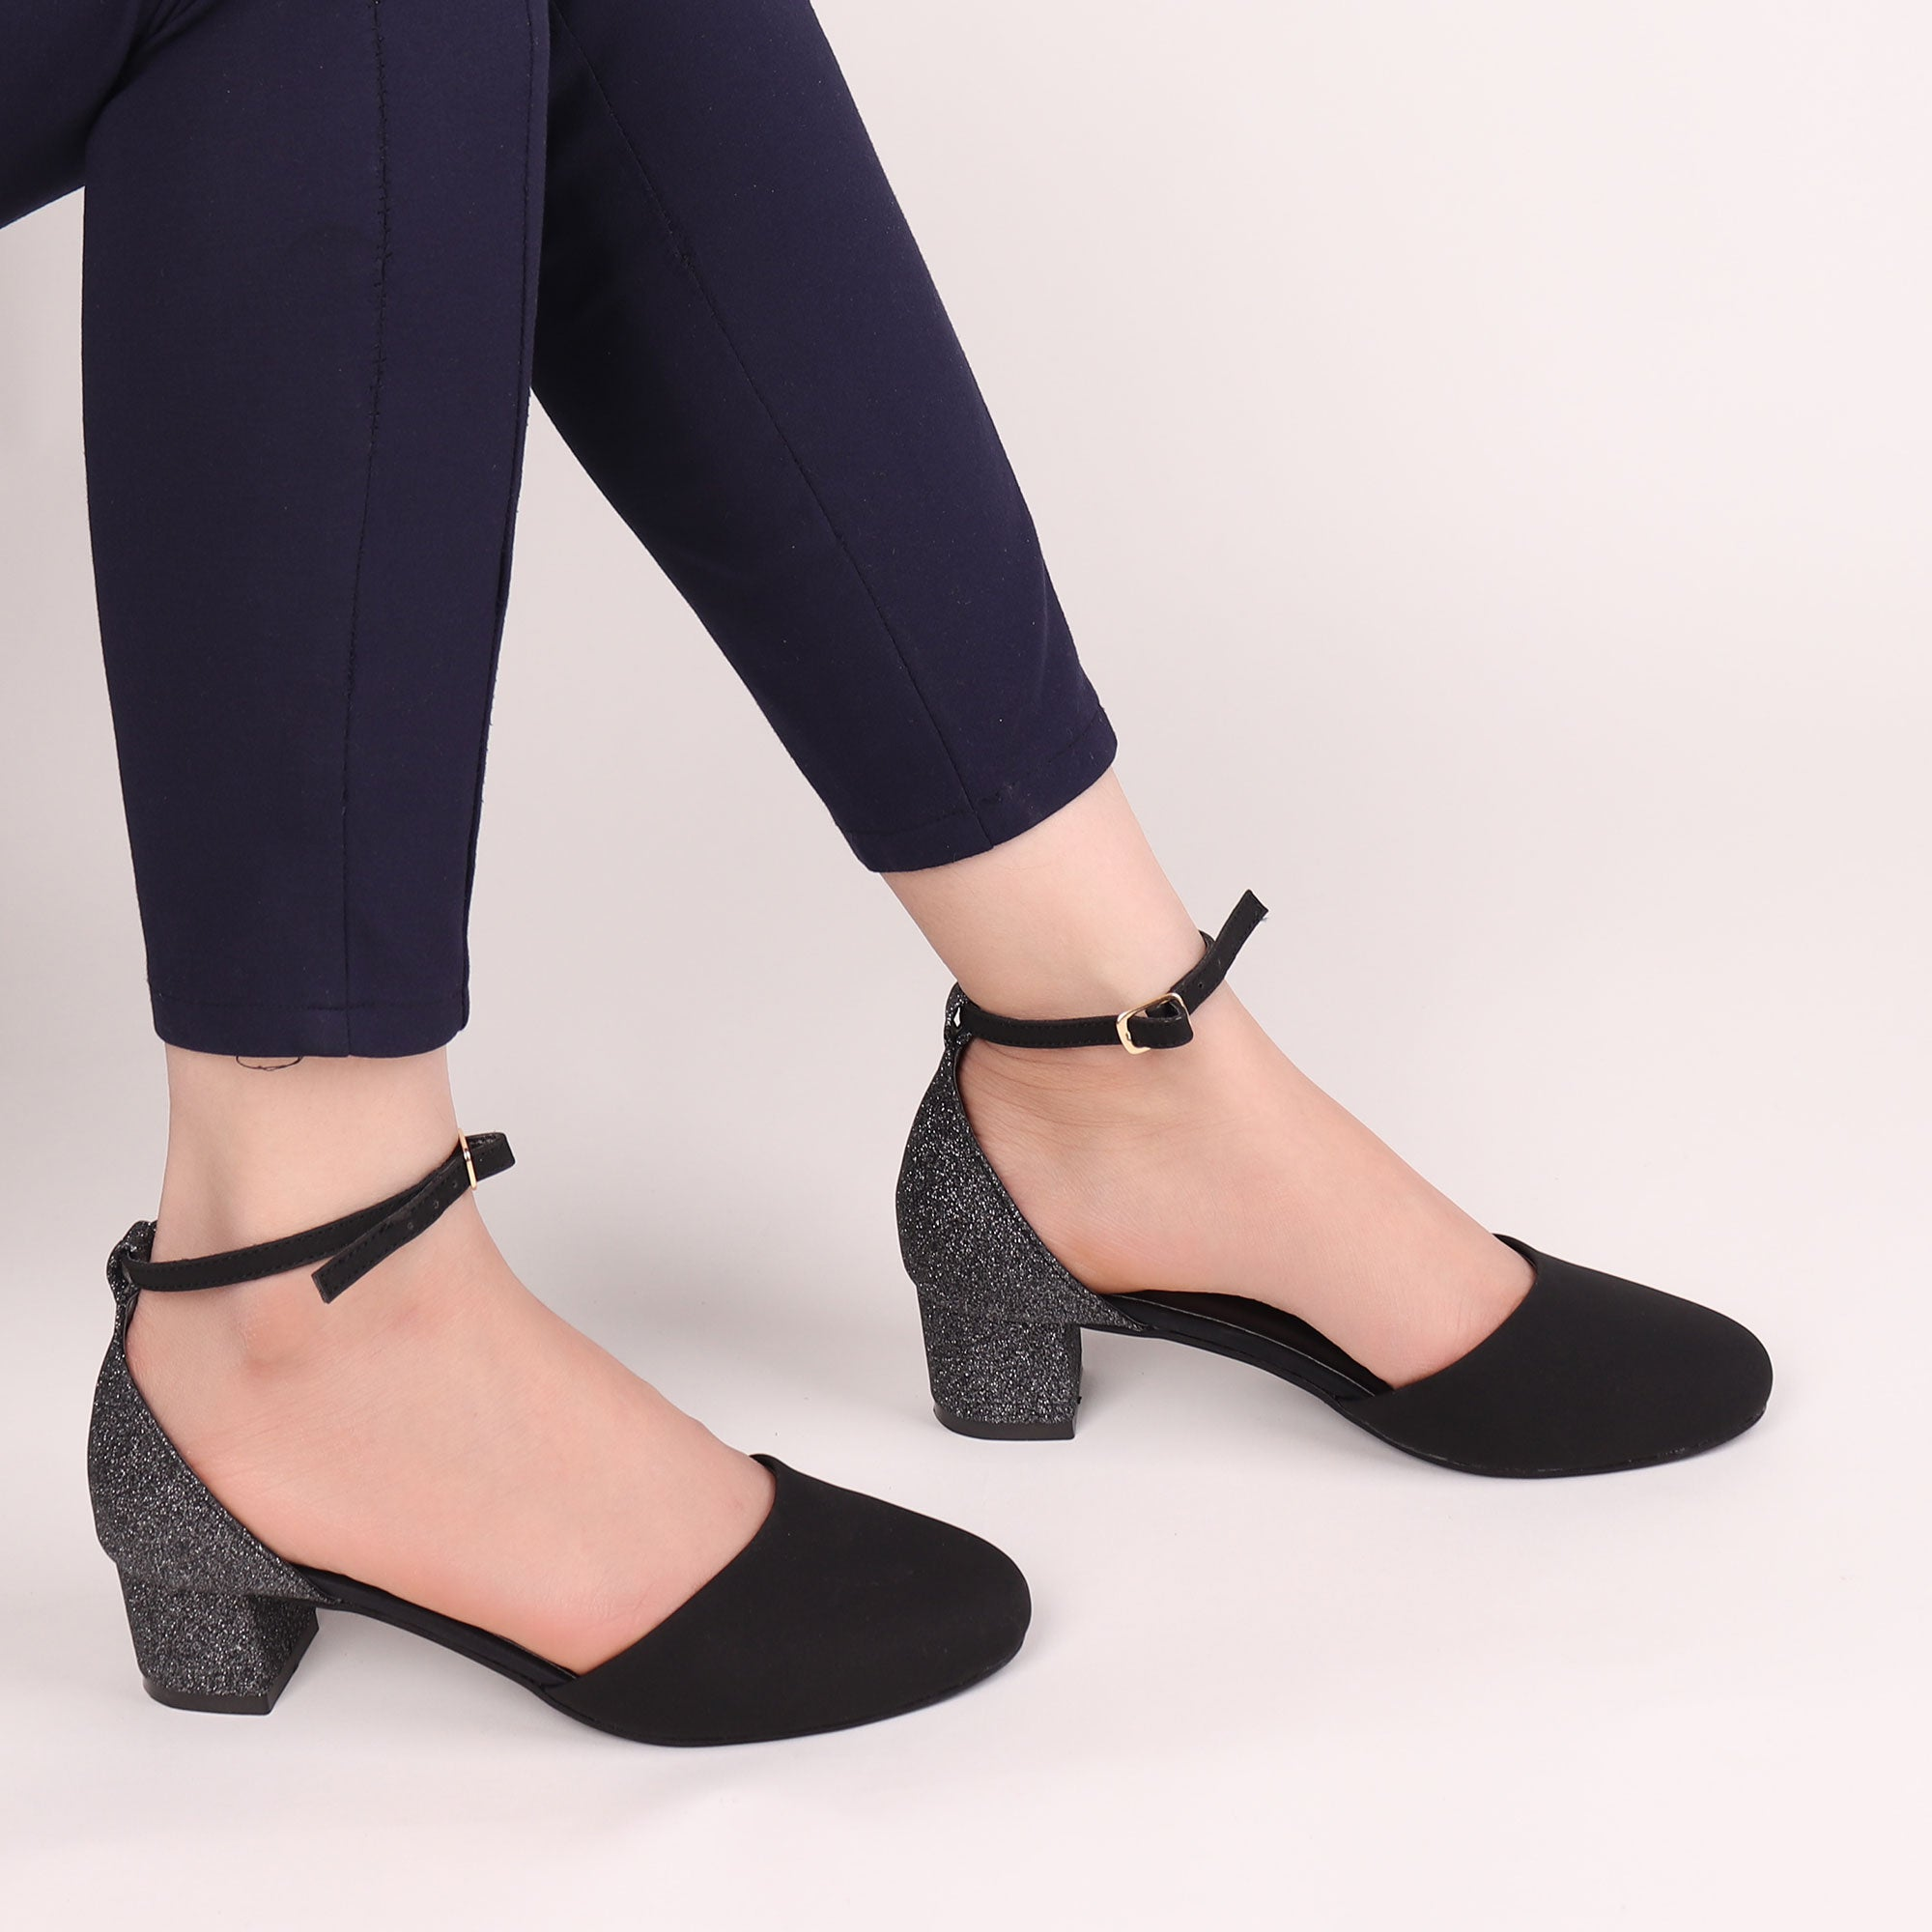 The Black Glitter Block Heel